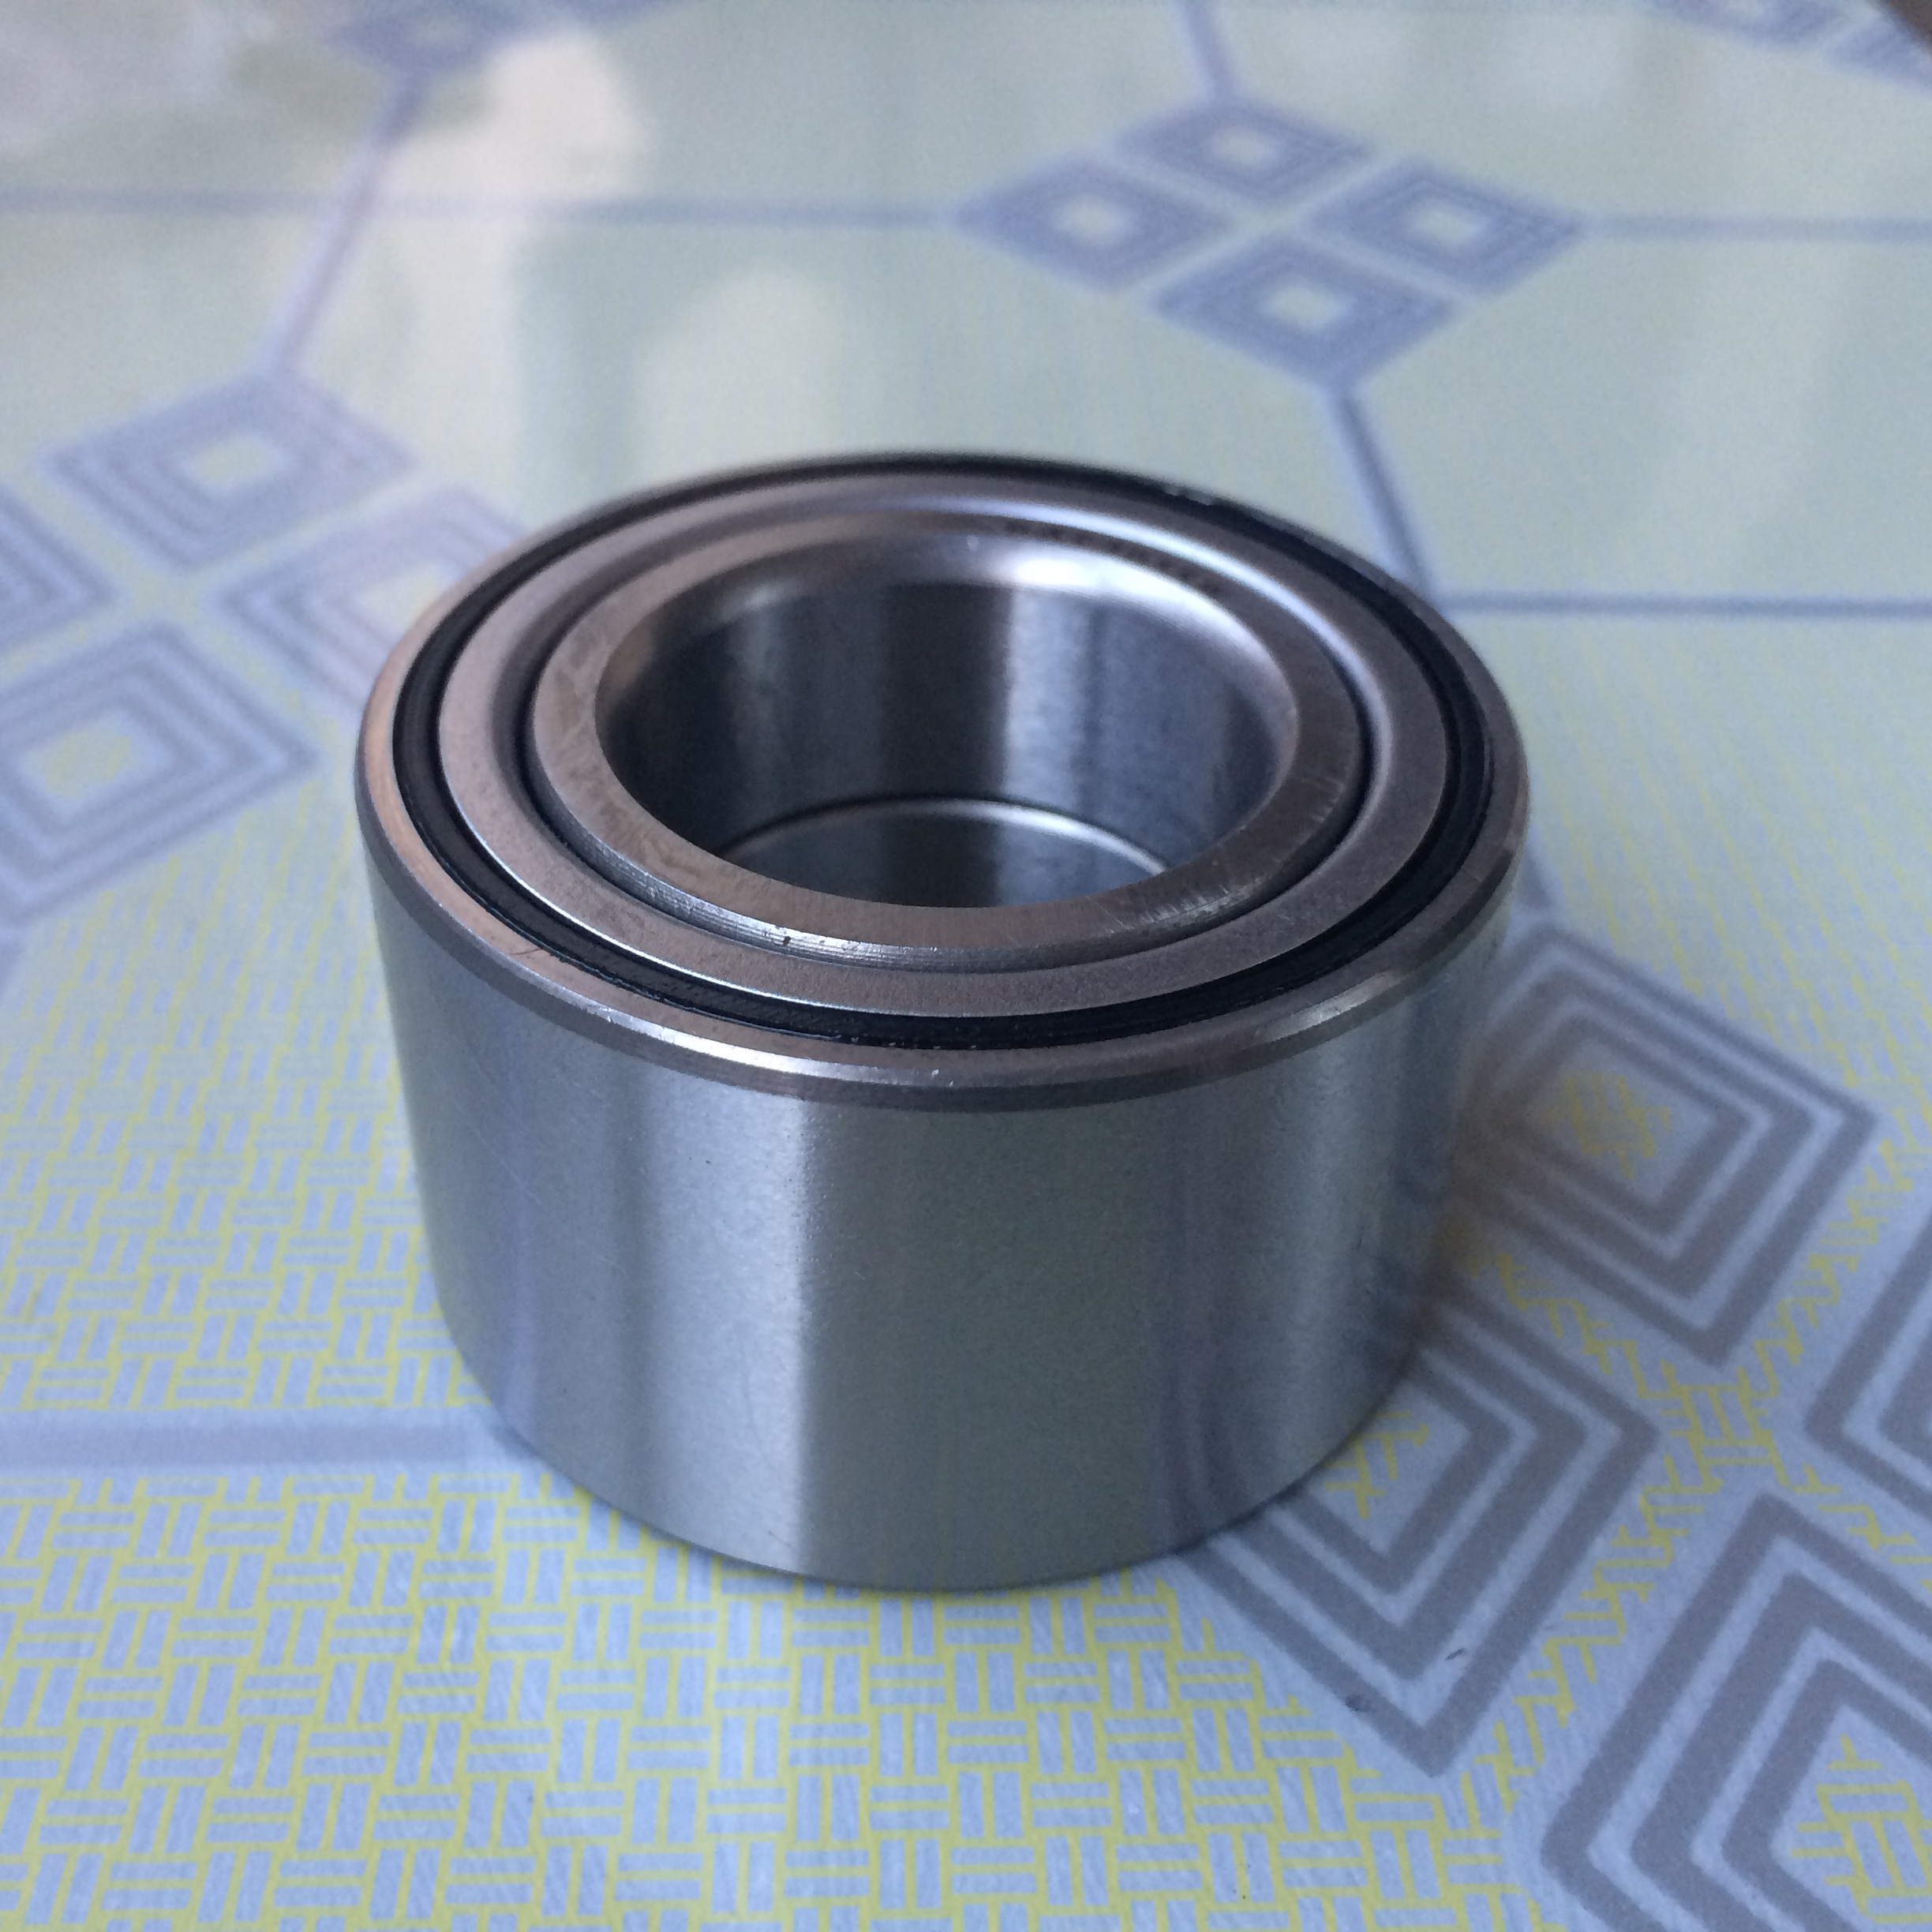 DAC43760043 DAC437643 DAV4376 43BWD12 510060 auto wheel hub bearing size 43*76*43mm 43x76x43mm iron shield dac43760043 dac437643 dav4376 43bwd12 510060 auto wheel hub bearing size 43 76 43mm 43x76x43mm iron shield